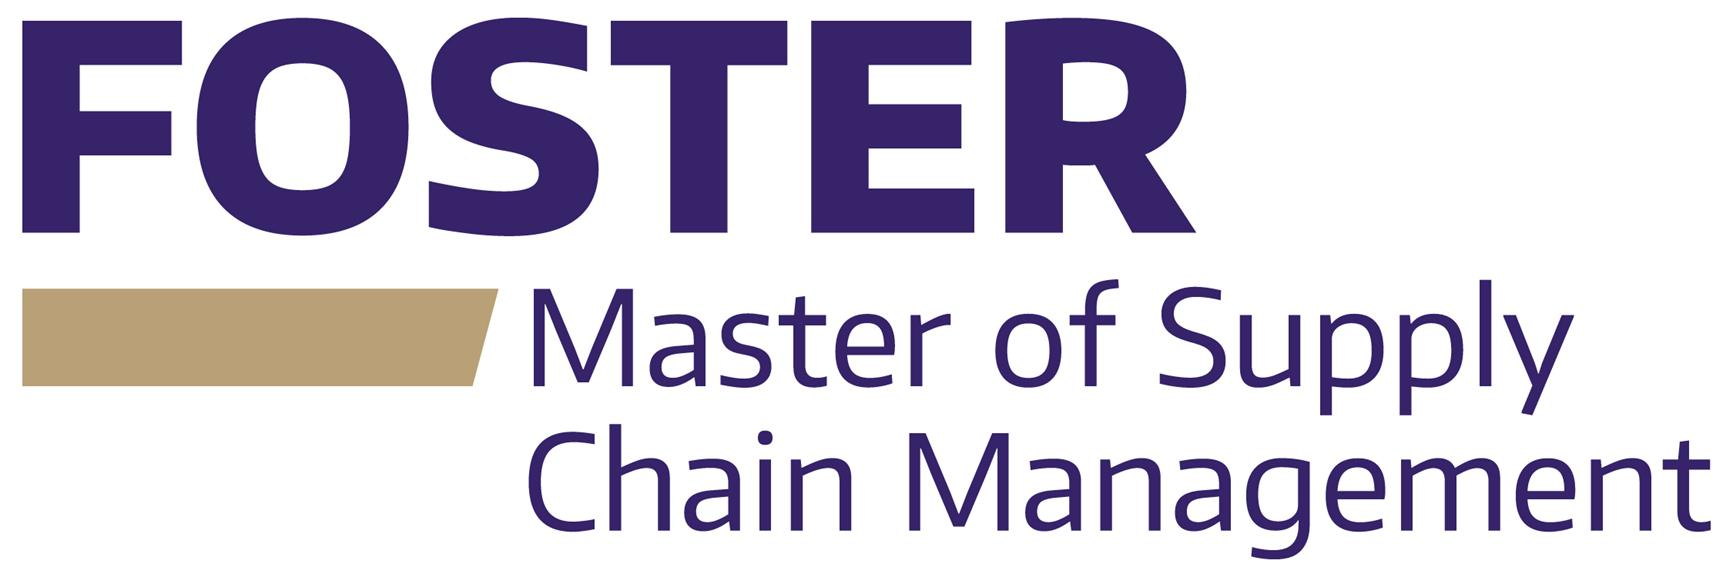 Online Information Session and Application Process - Master of Supply Chain Management